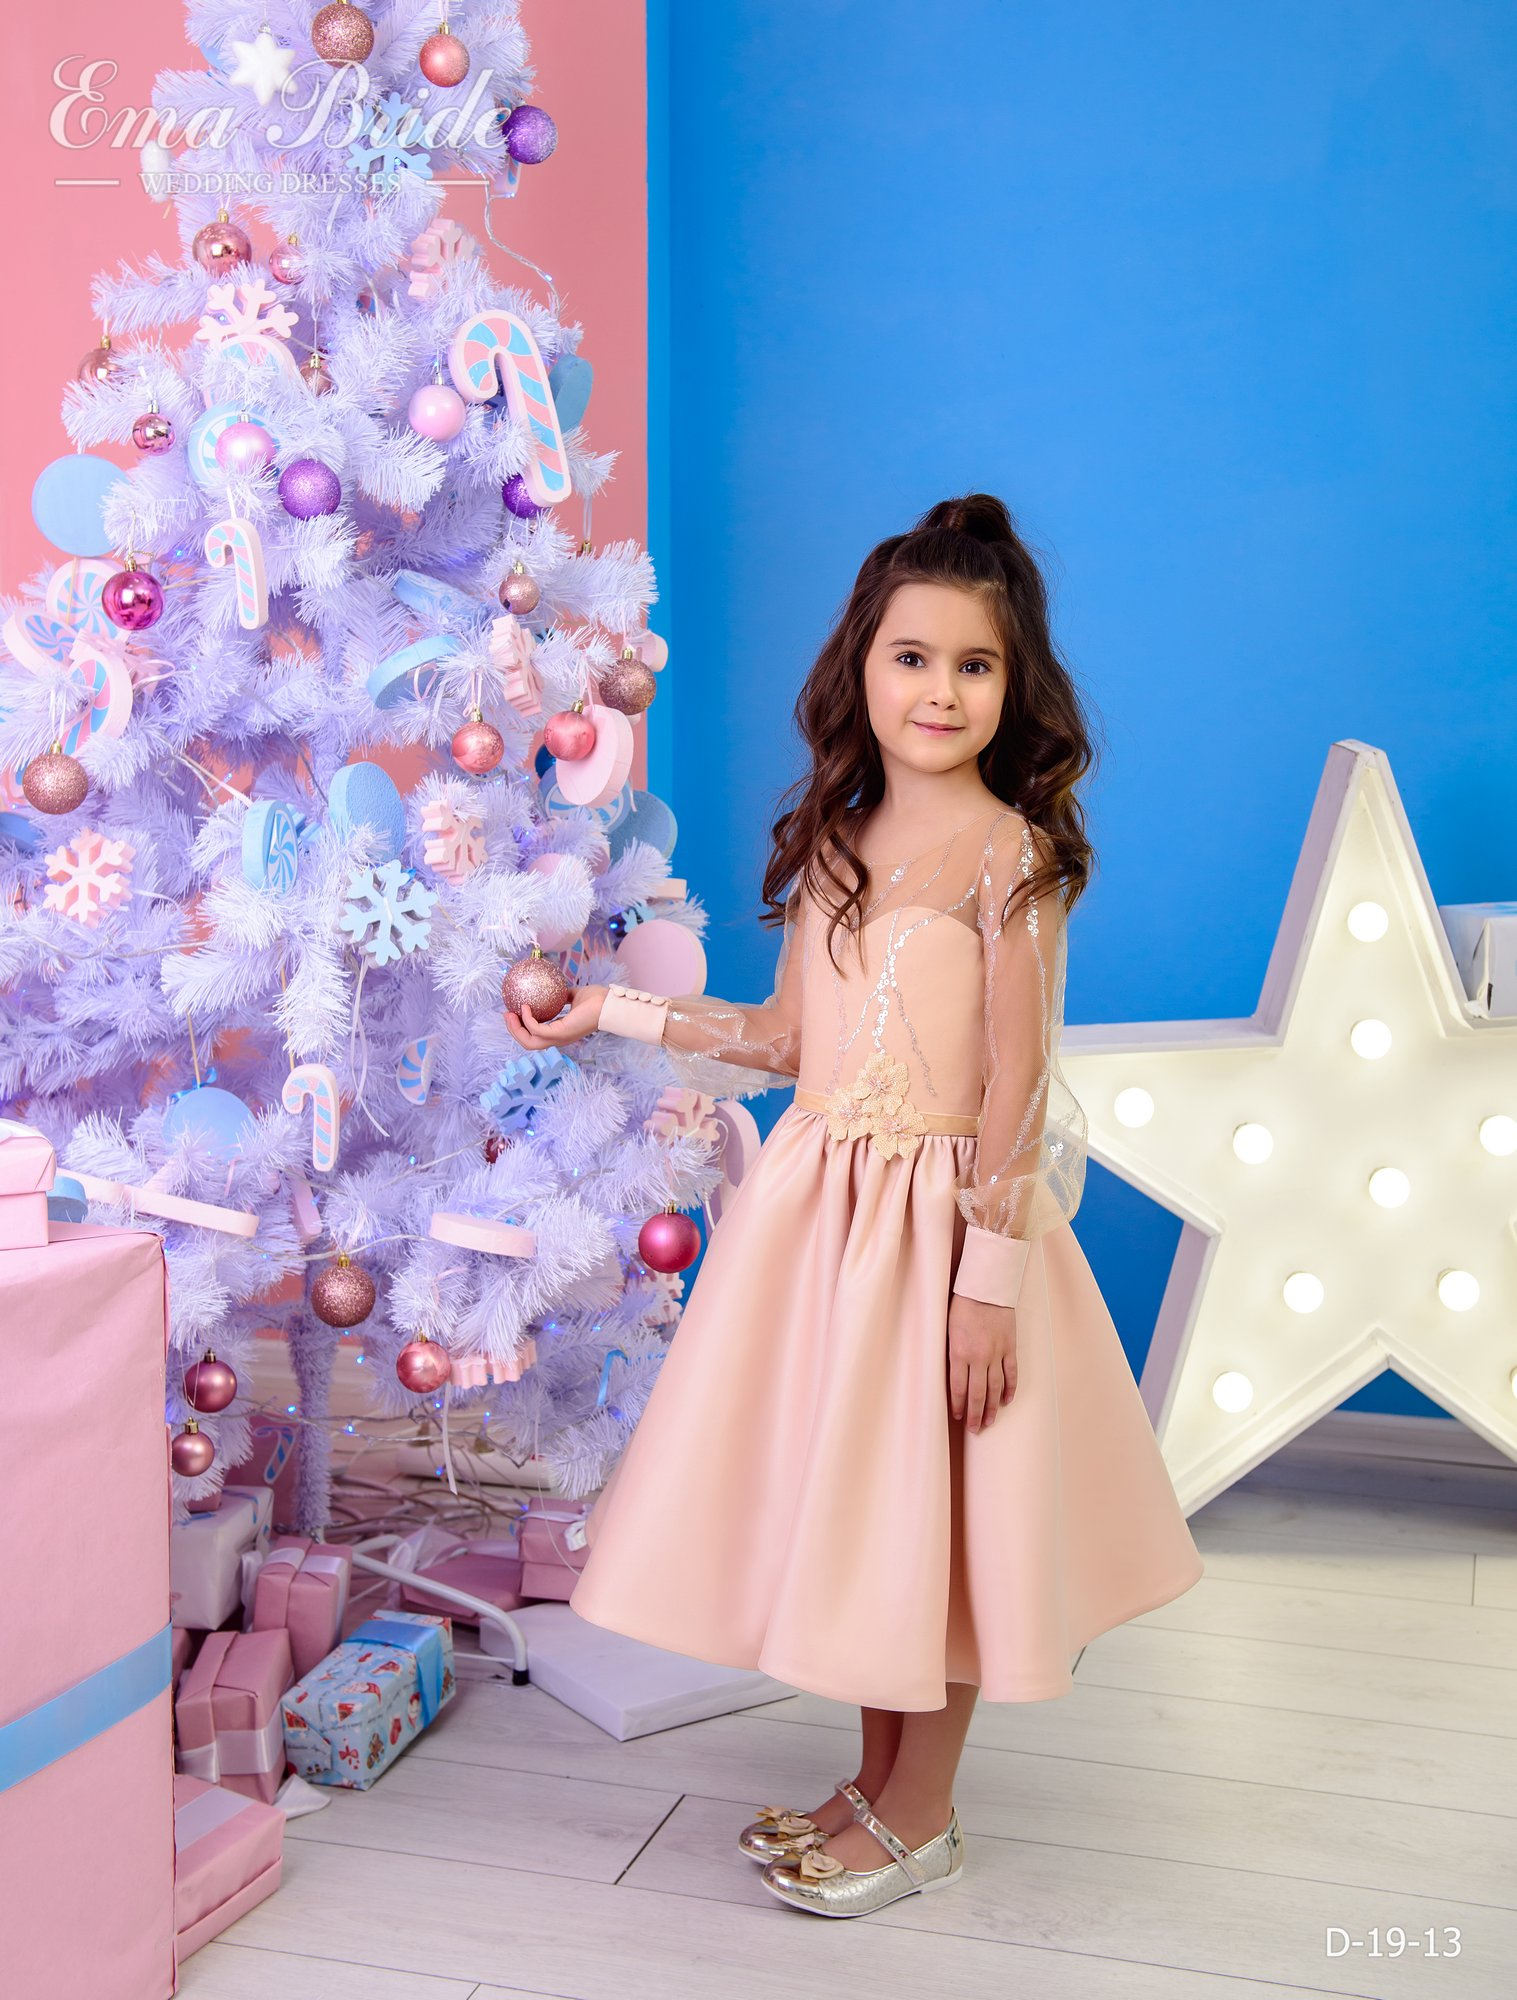 Children's dress by EmaBride D-19-13 2019